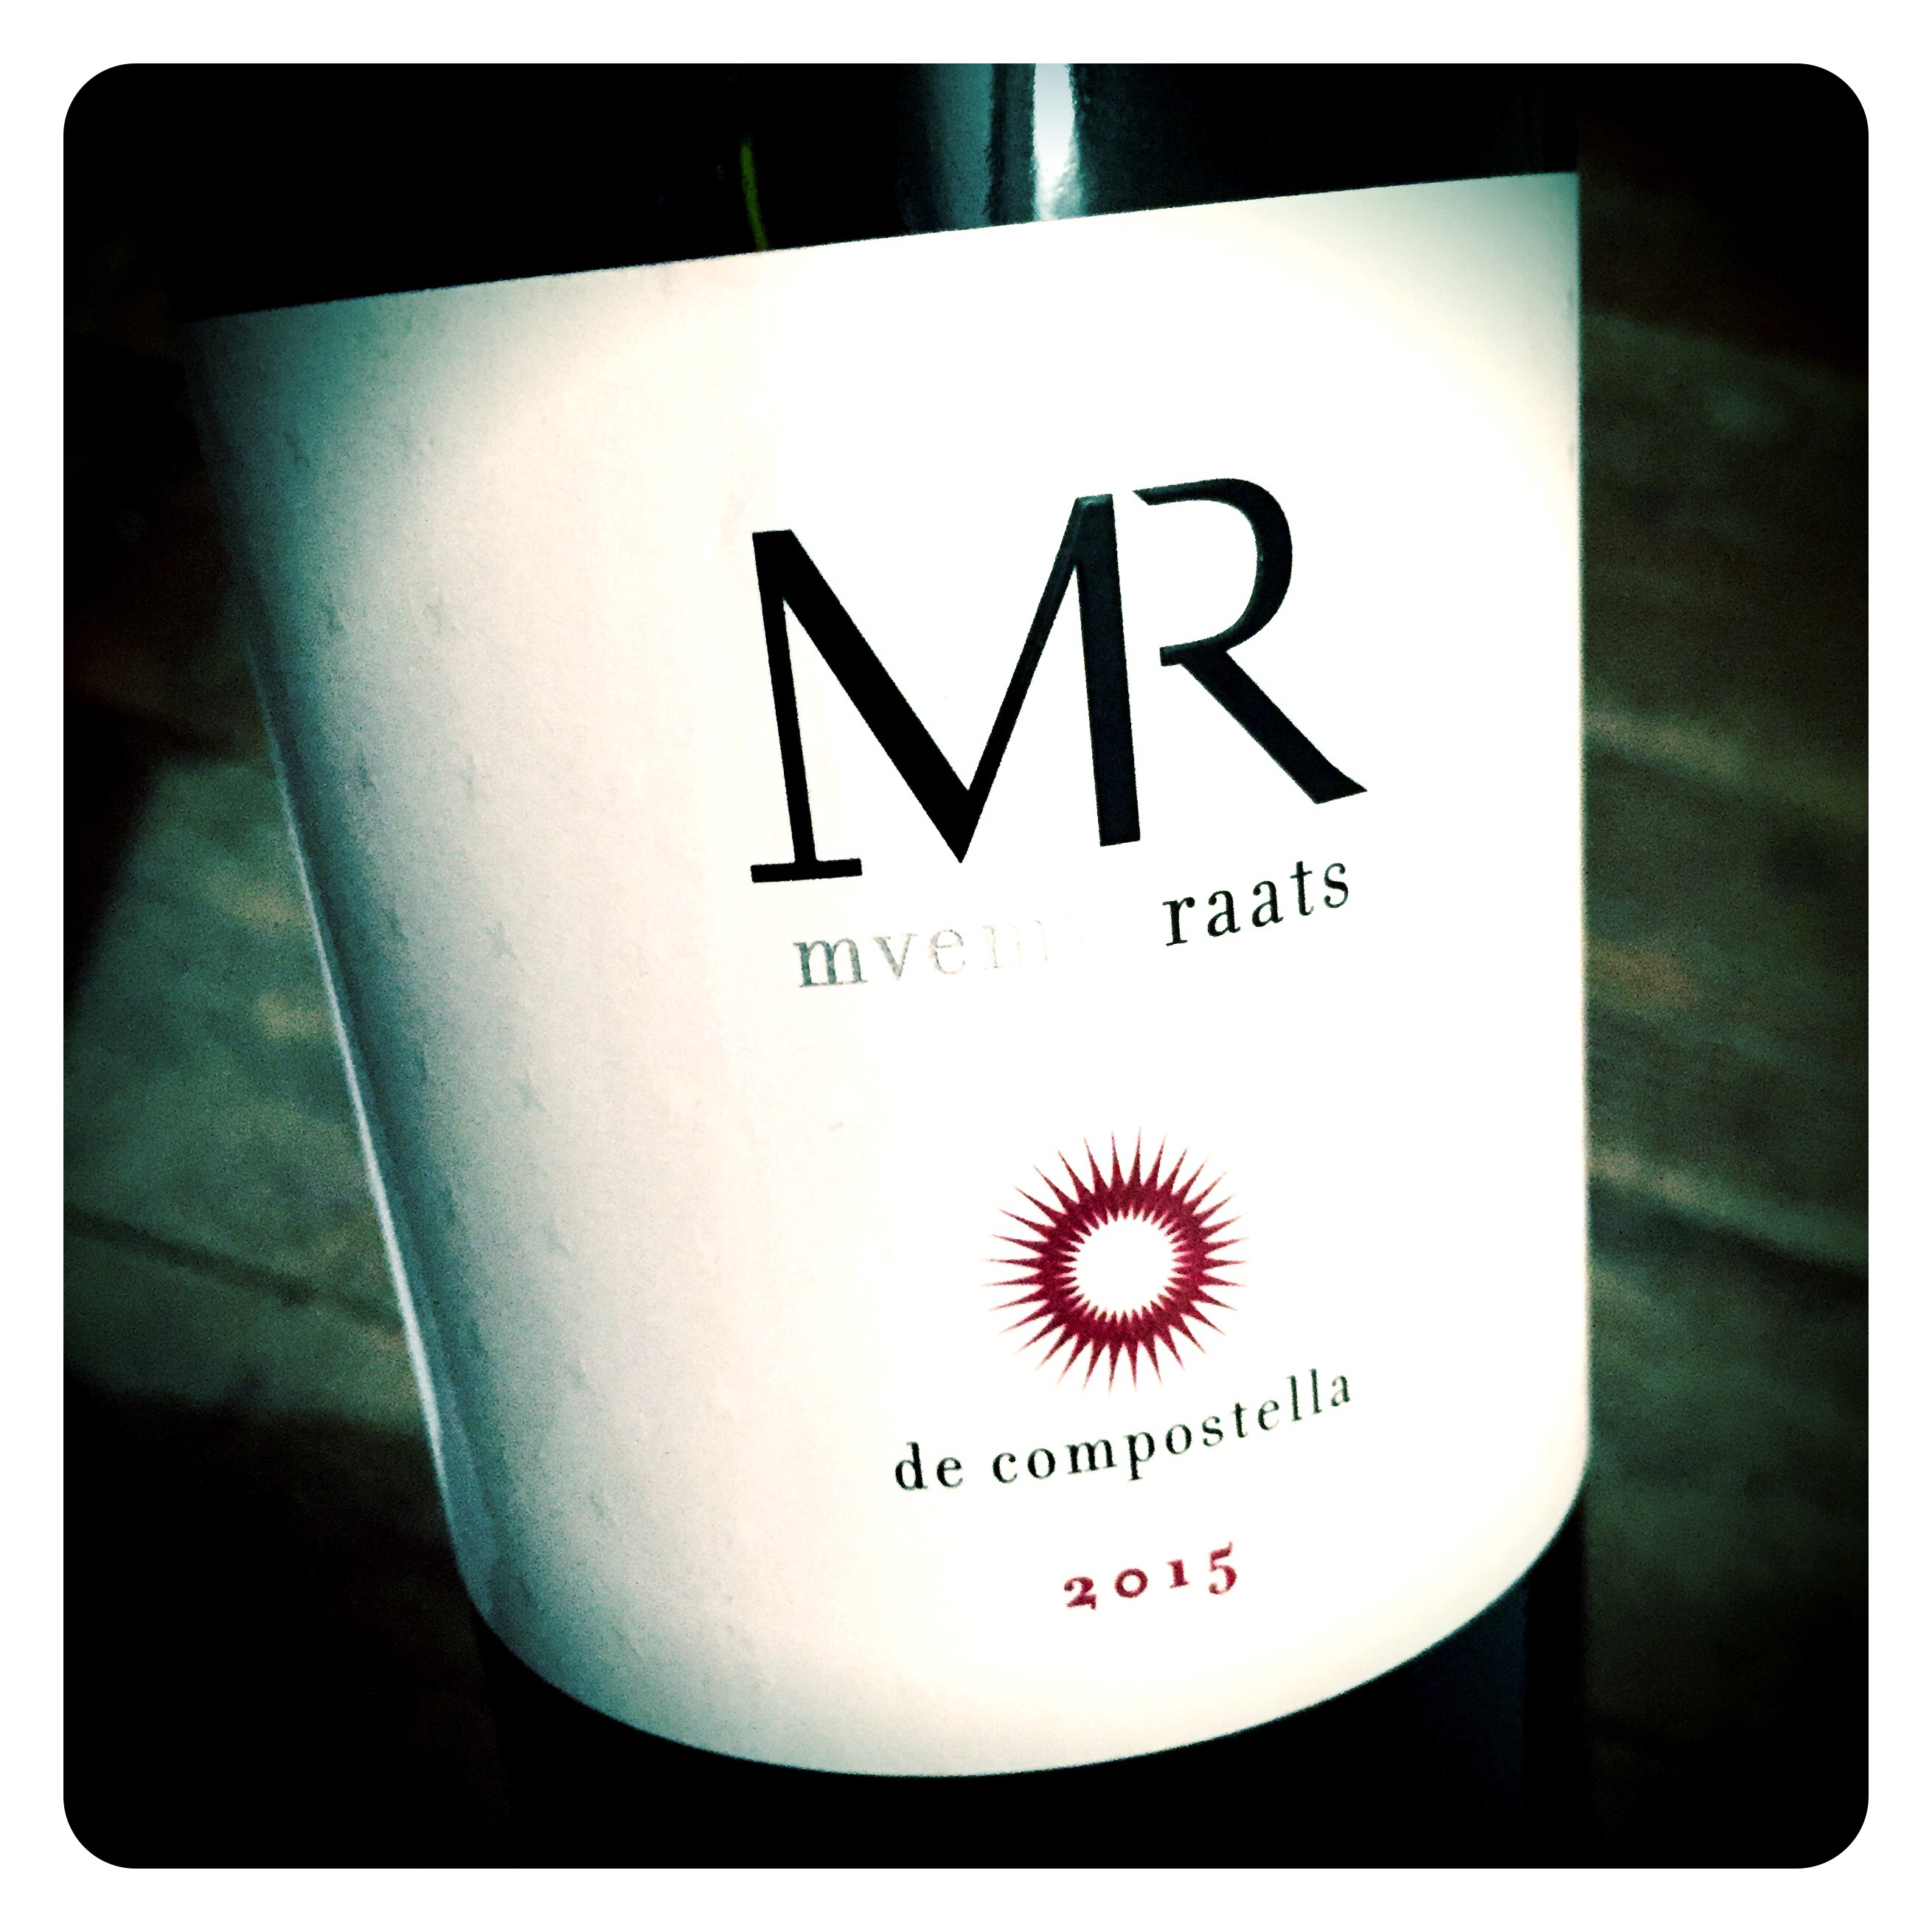 Ground Breaking South African Bordeaux Blend ~ Rating The Epic 2015 Mr De Compostella? photo